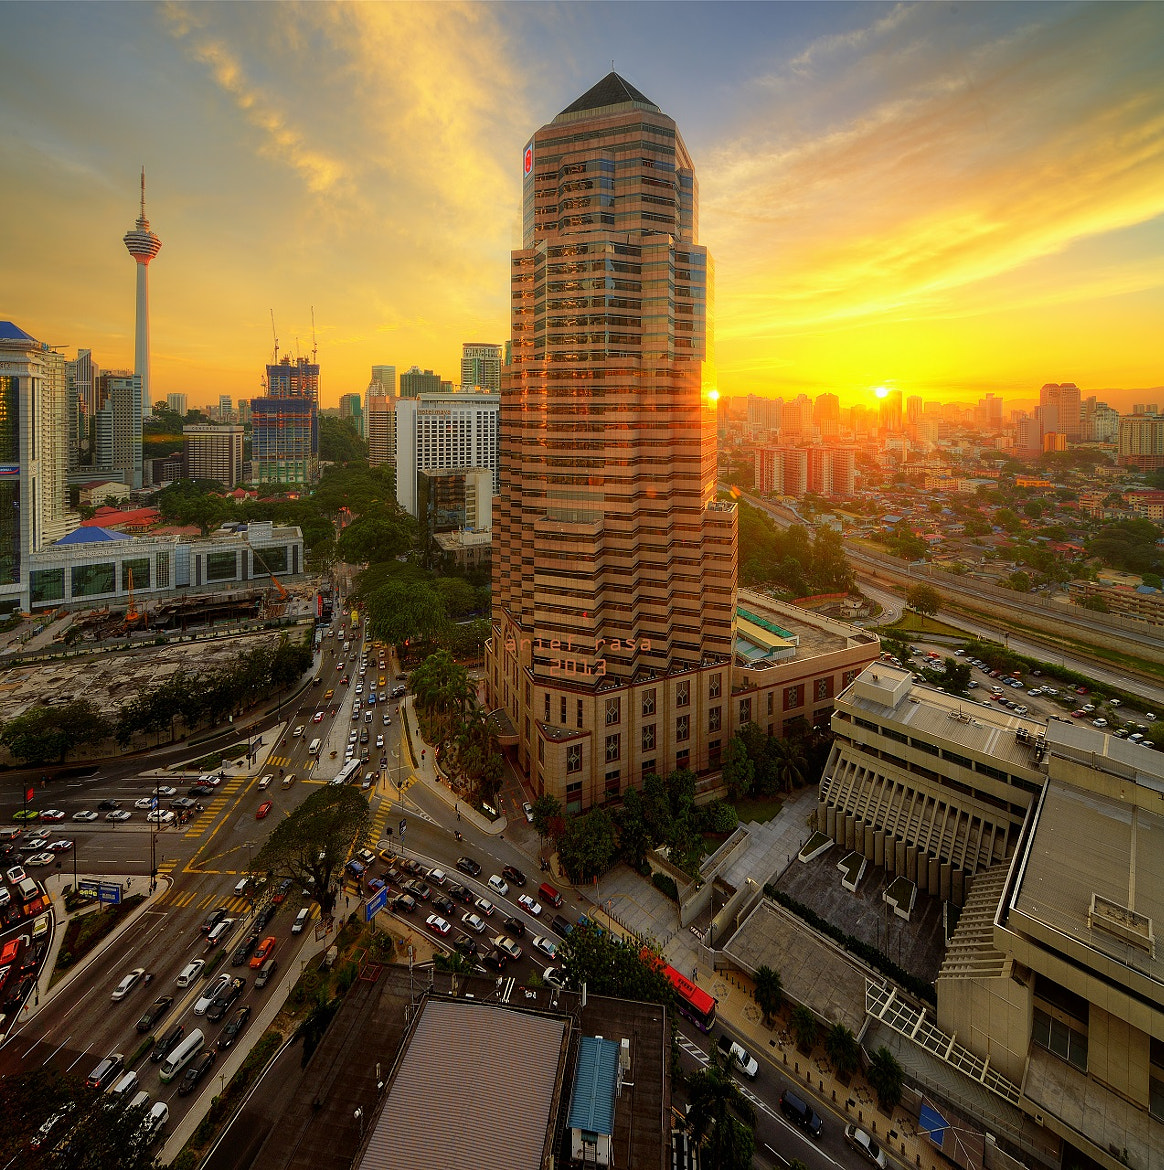 Photograph Golden Hour Cityscape by Kamrul Arifin on 500px